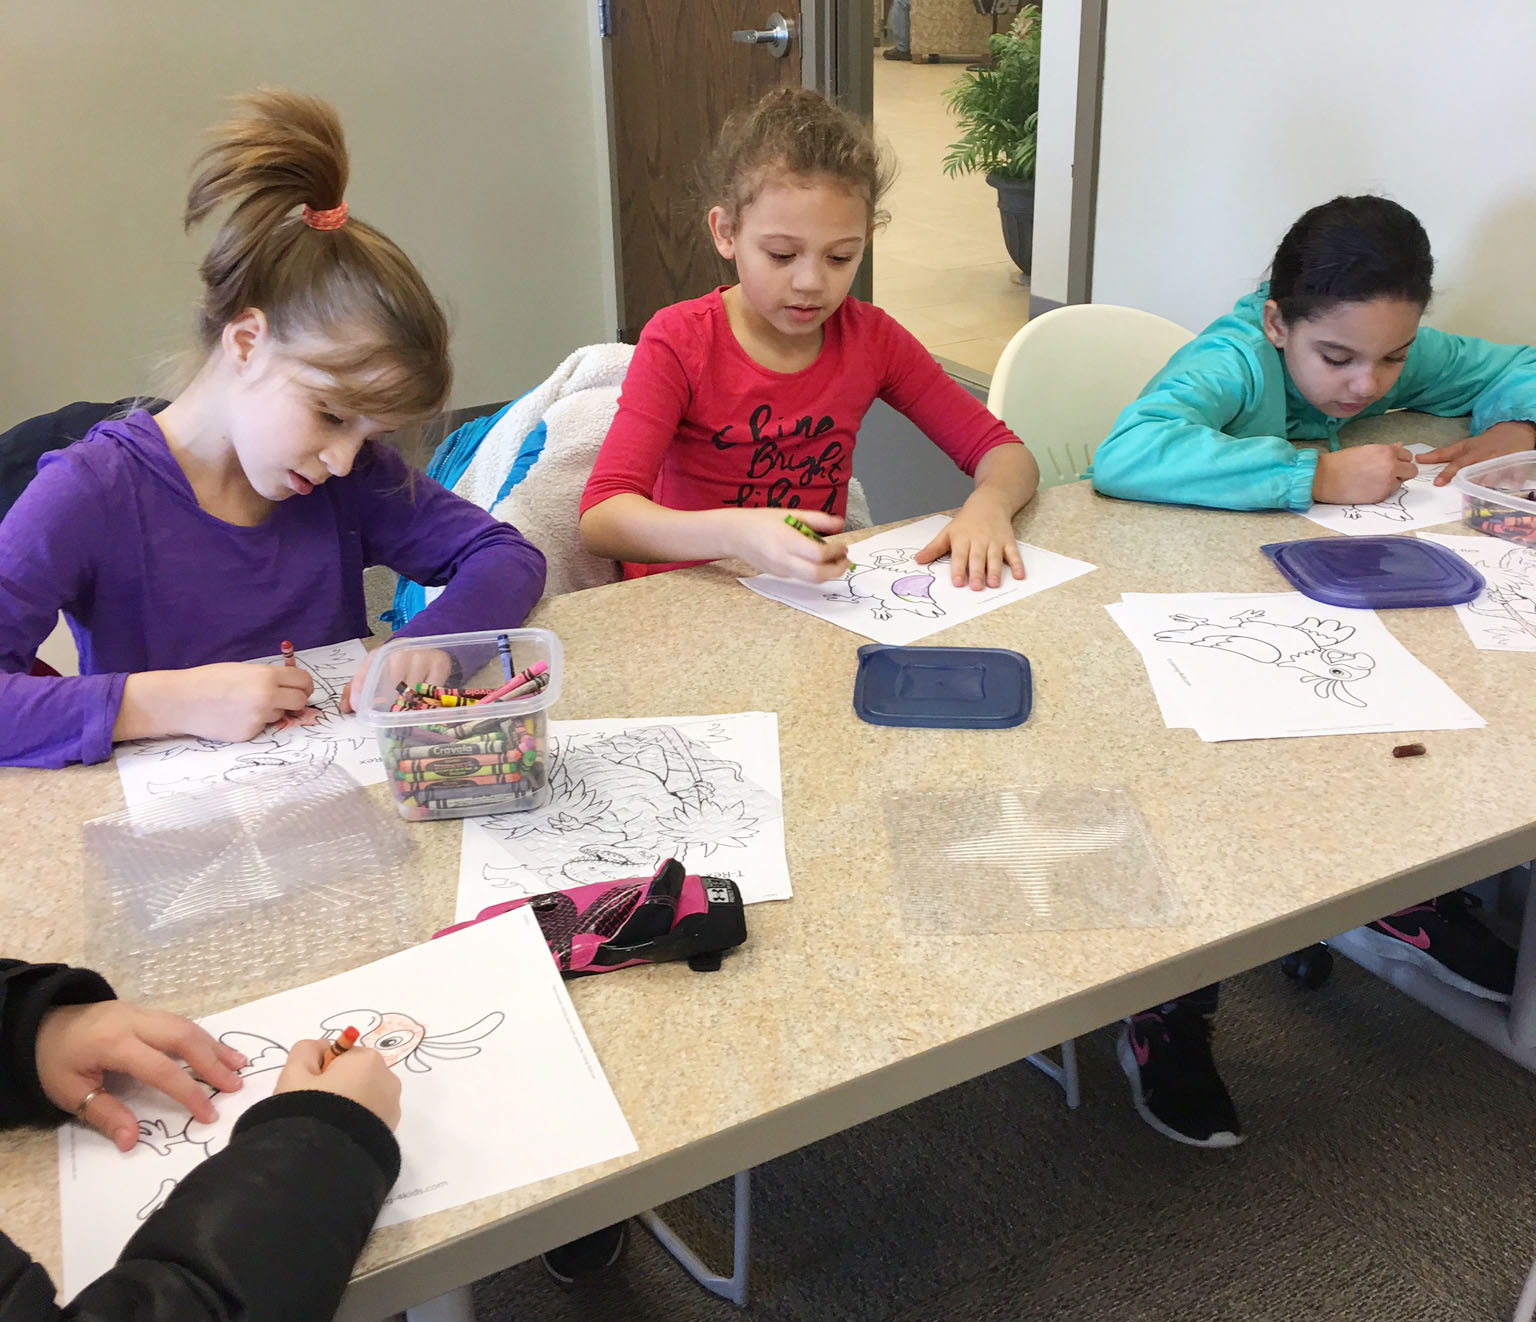 CES third-graders, from left, Raegan Hayes, Alicia Spaulding and Aleecia Knezevic color together.